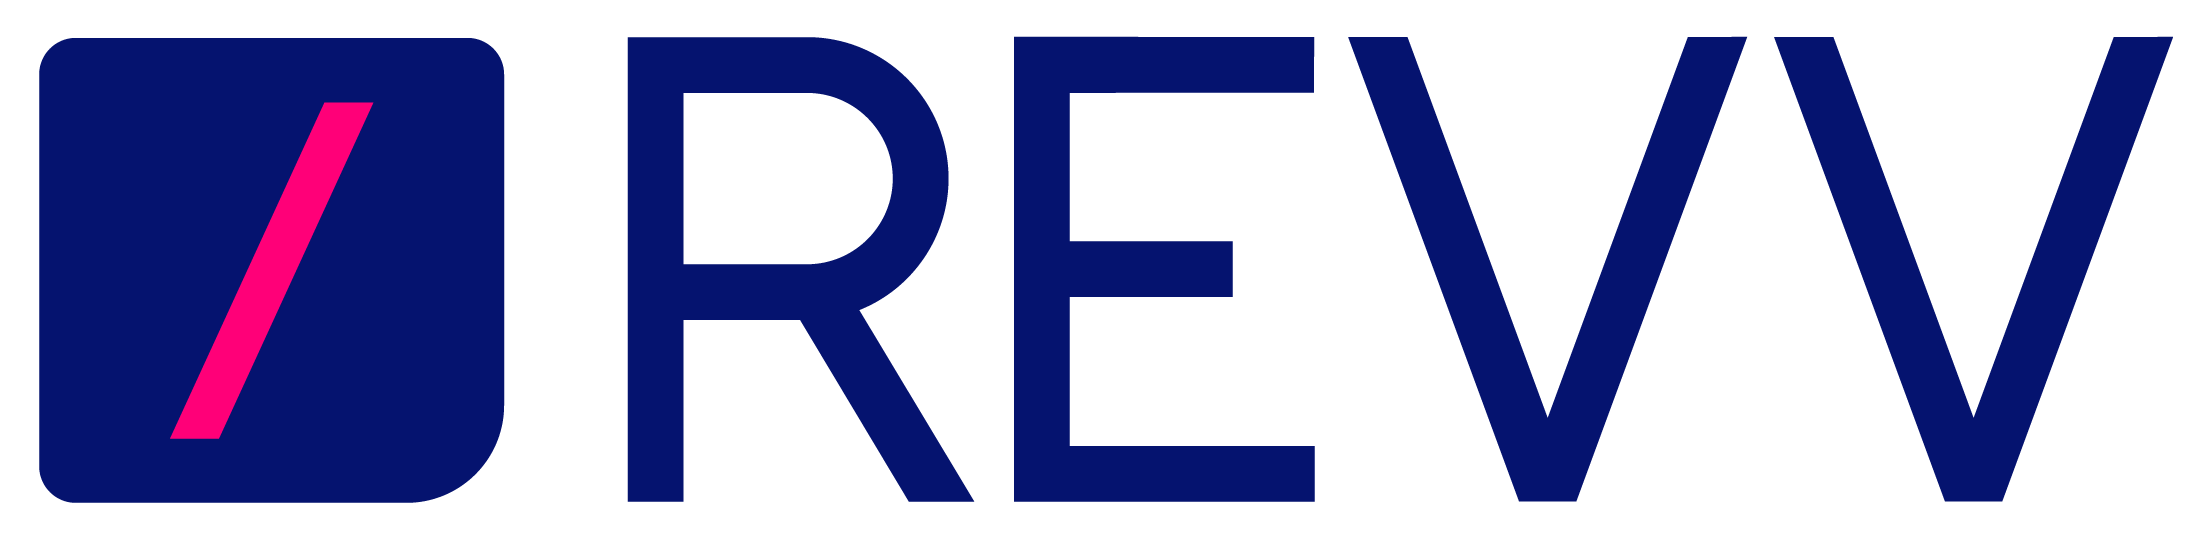 This is the Revv logo. Revv is a quoting and contract management software platform